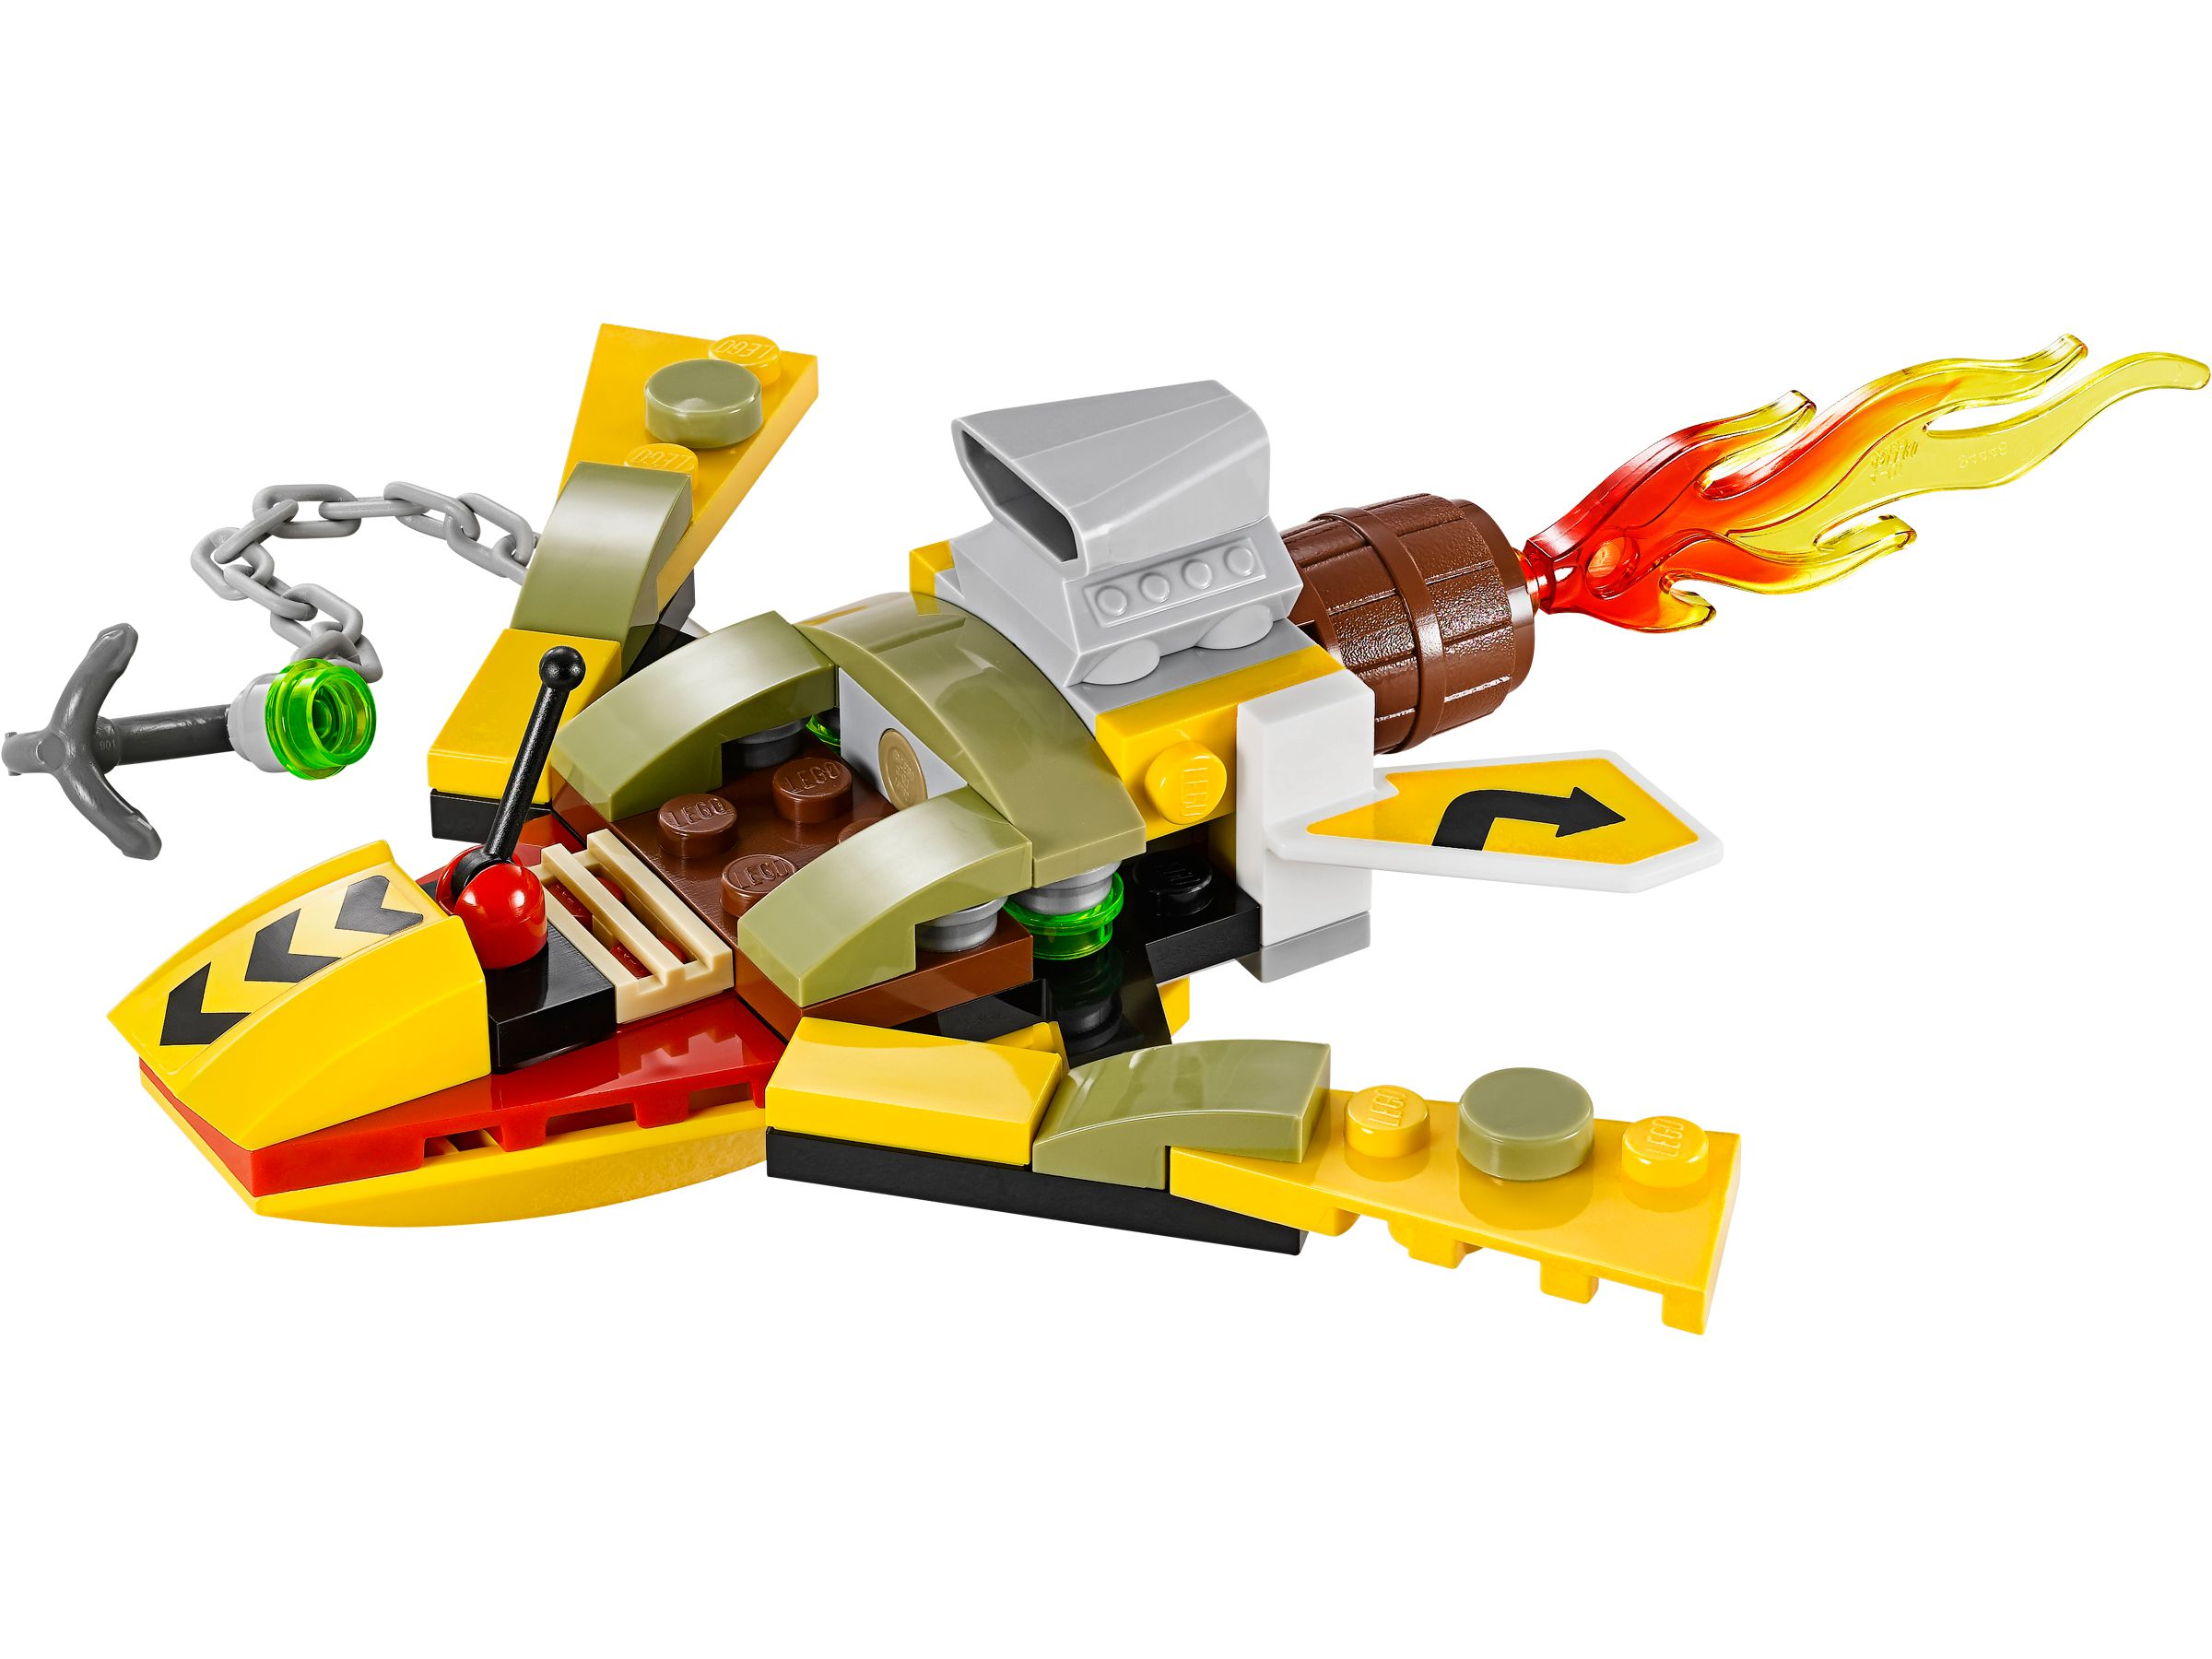 LEGO Teenage Mutant Ninja Turtles 79122 Rettung aus Shredders Versteck LEGO_79122_alt7.jpg